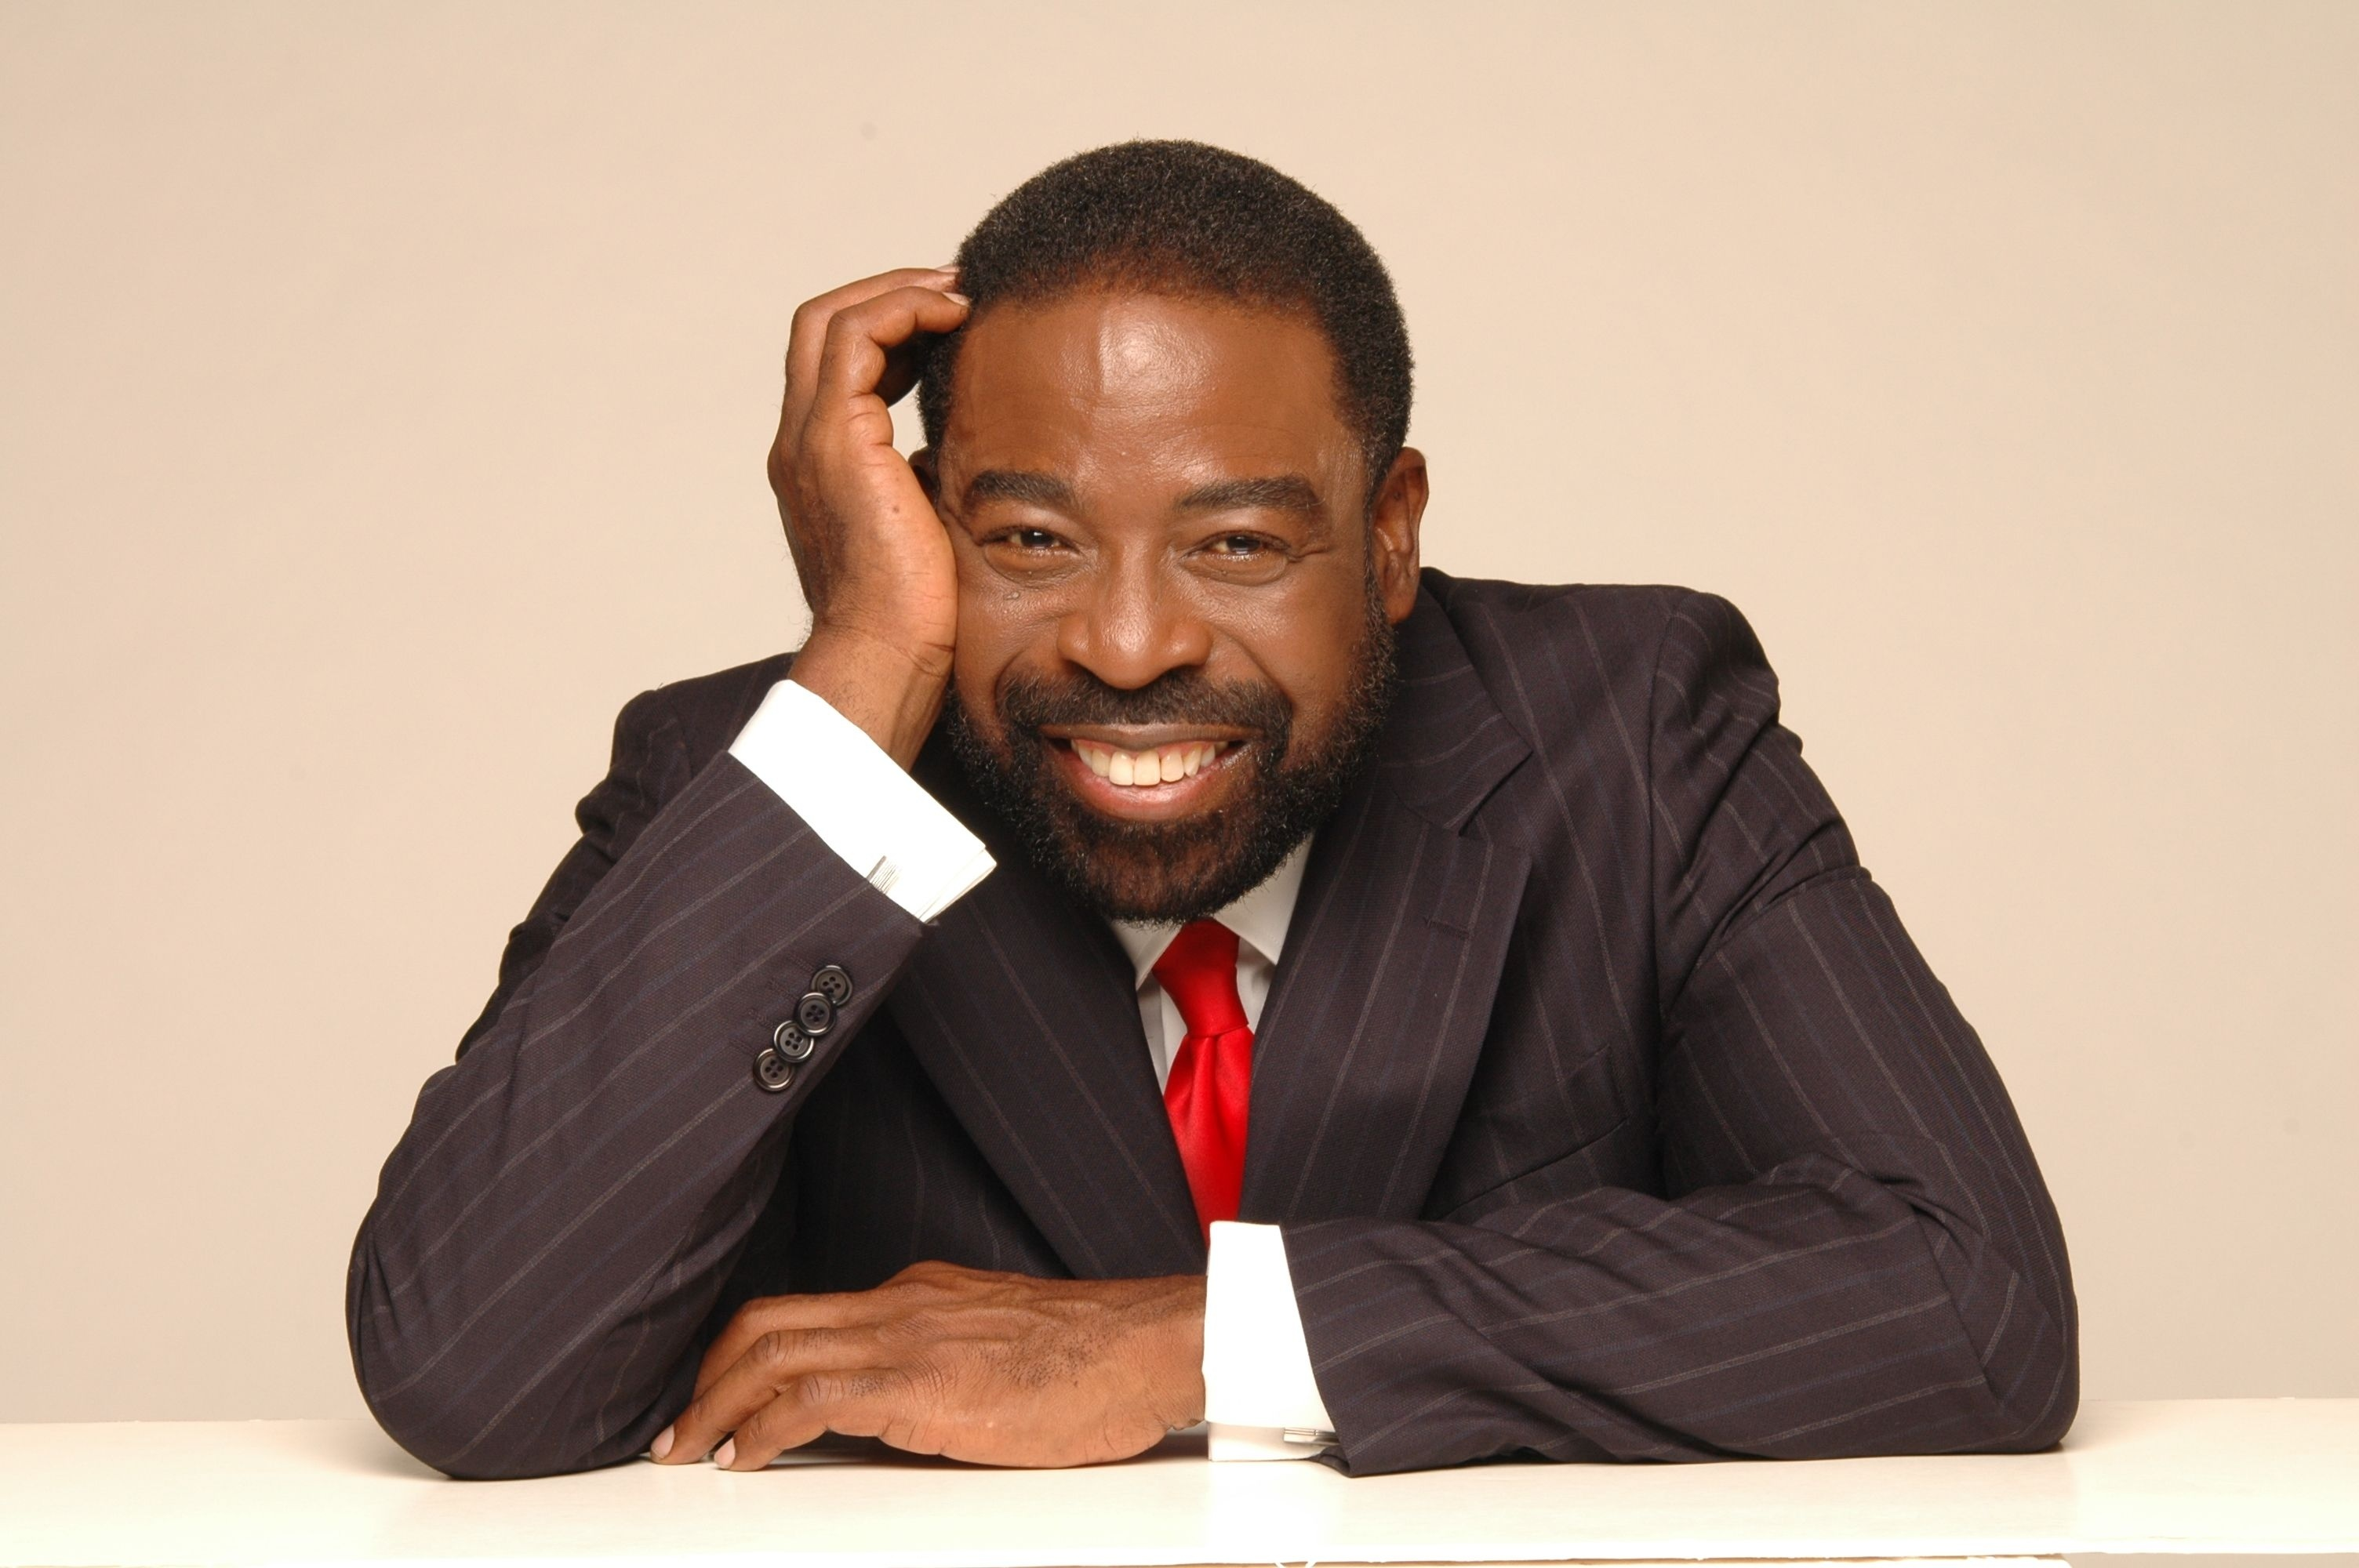 Les Brown: Inspirational Figure – The Best You Magazine